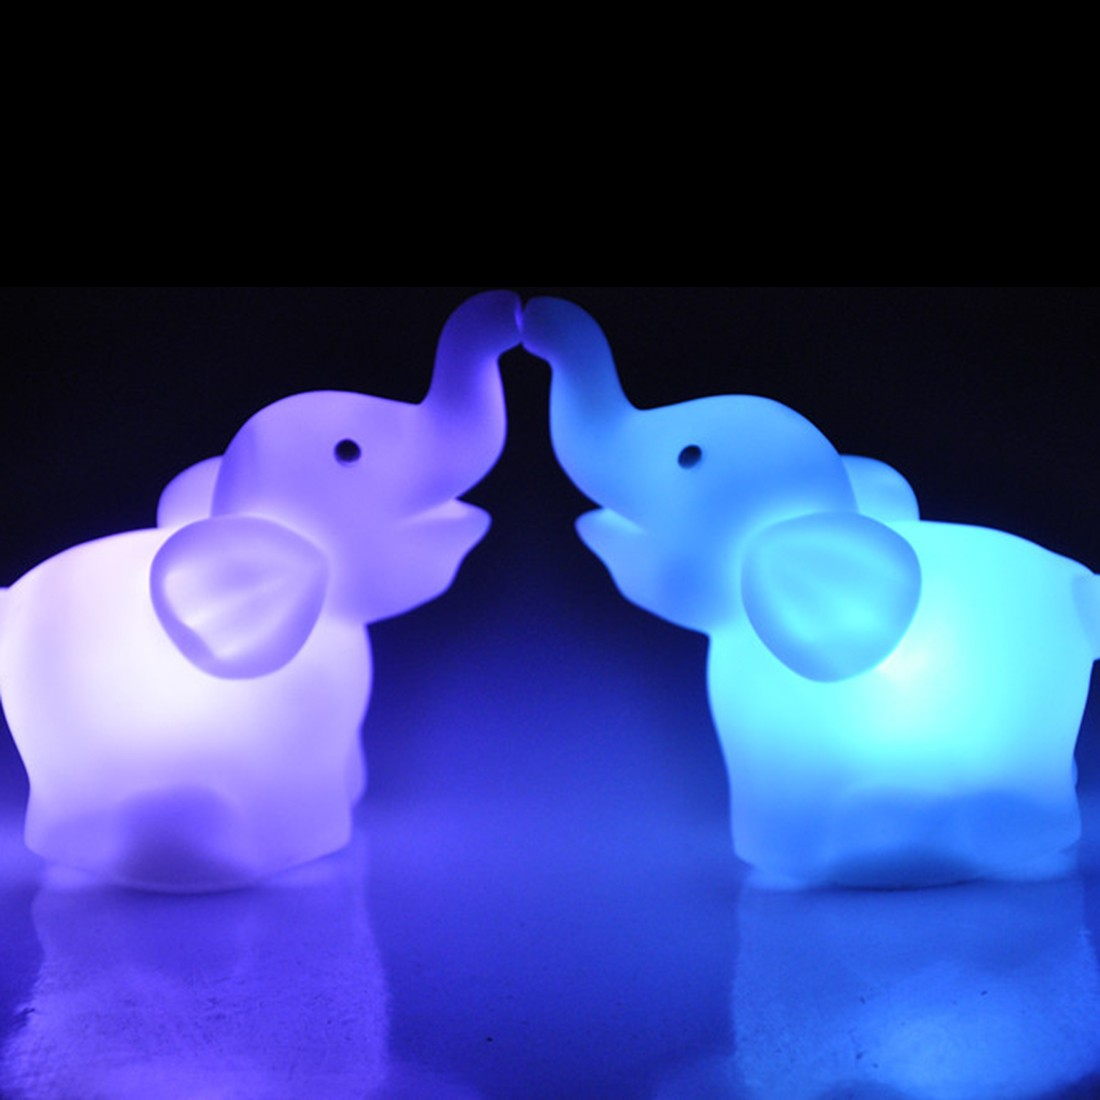 LED Night Light Lamp 7 Color Changing Cute Elephant Shape Wedding Party Decor With Battery